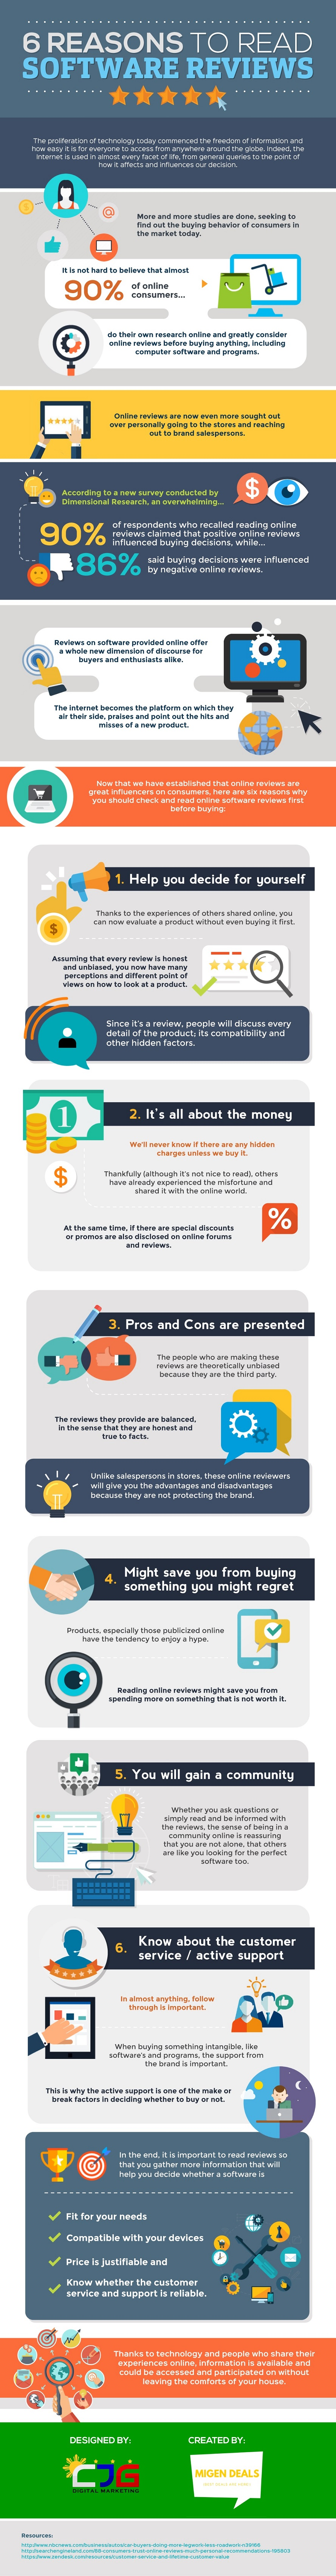 6 reasons to read software reviews infographic